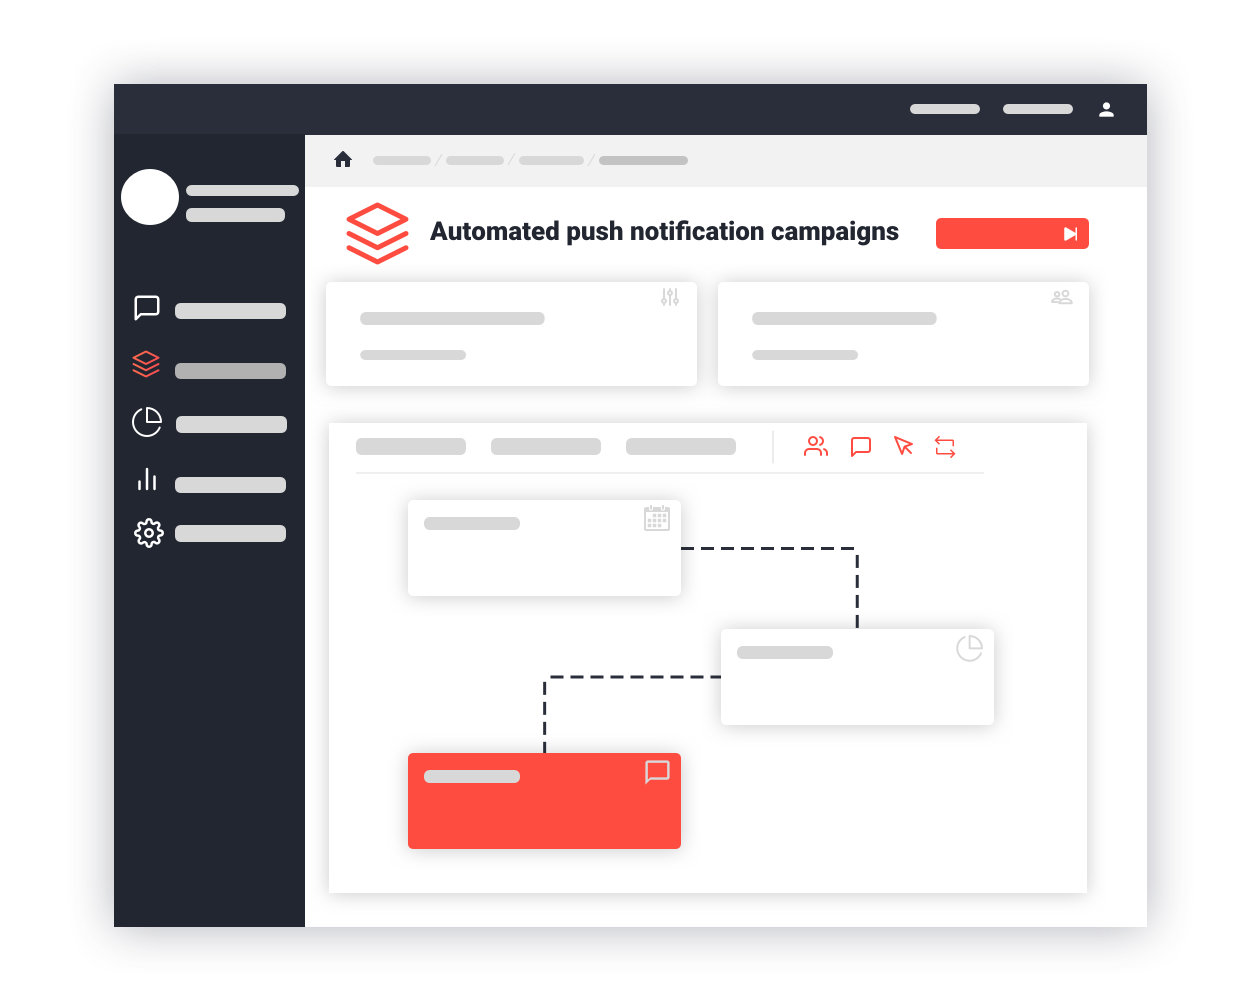 Automate your push notifications and scale up your marketing with drip campaigns